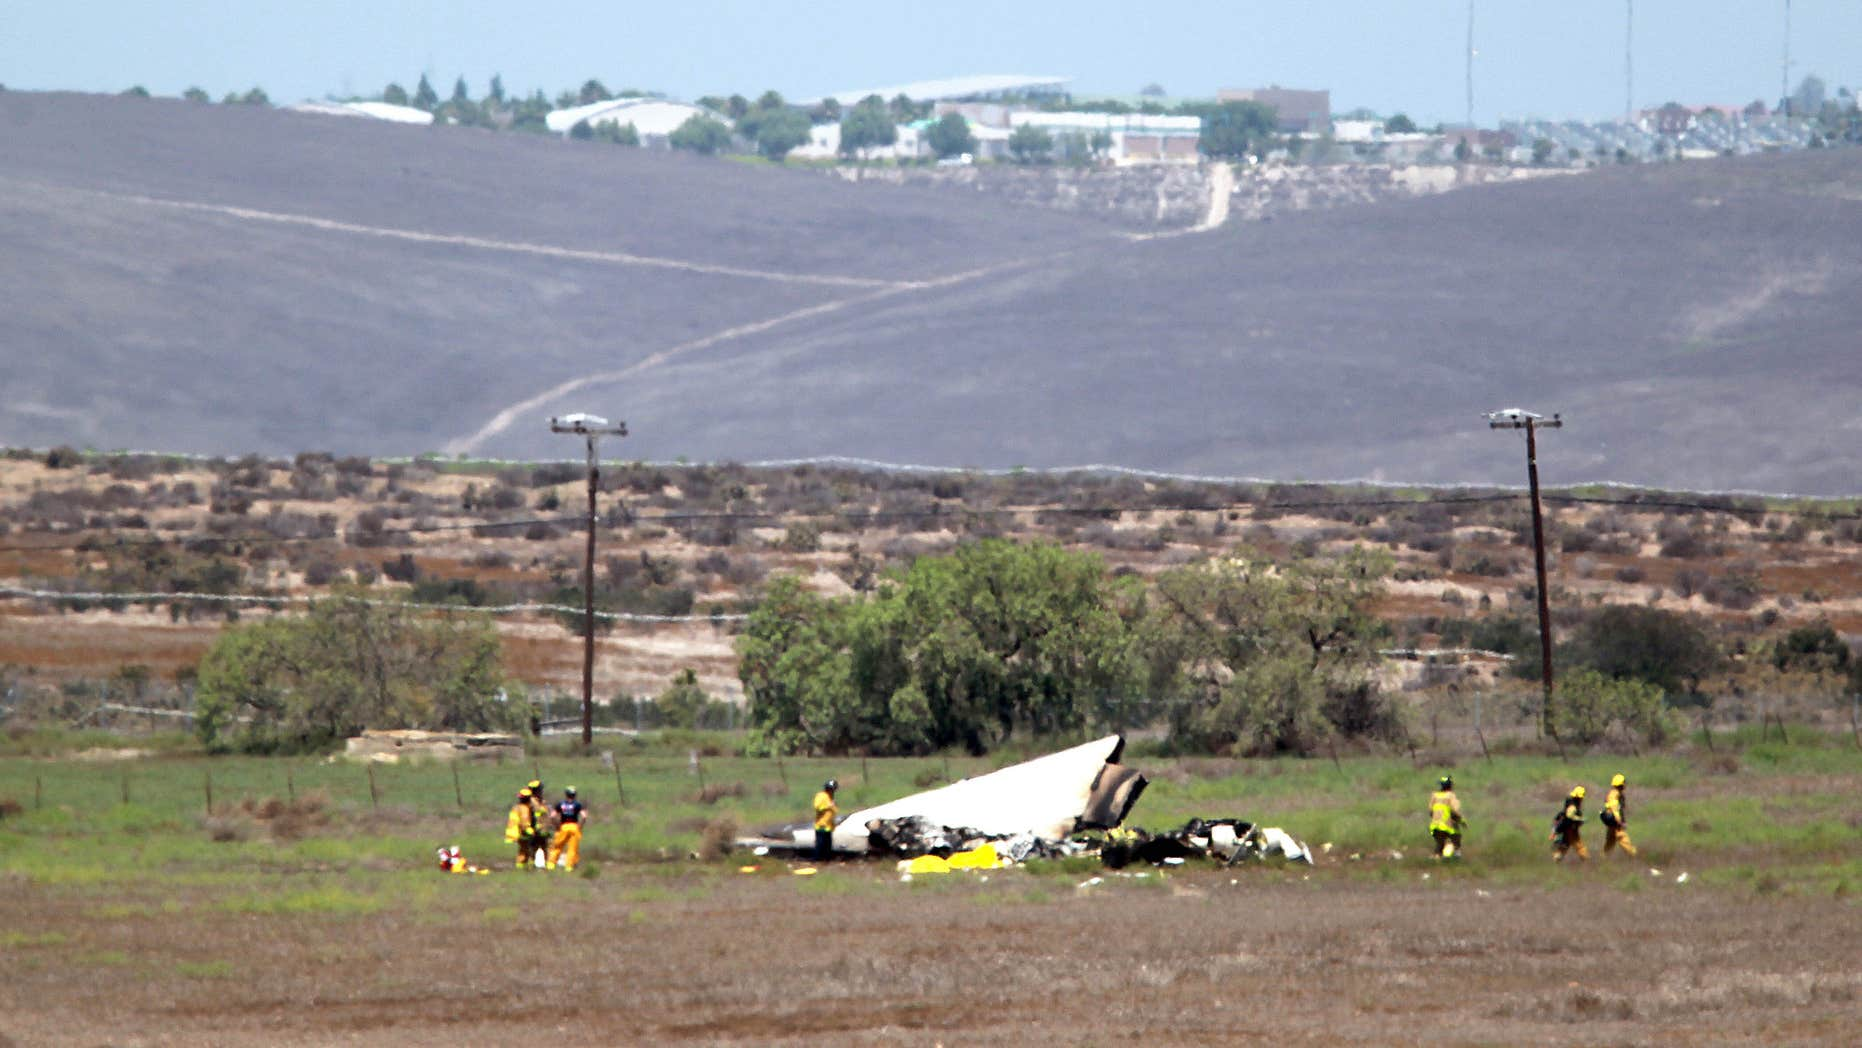 Aug. 16, 2015: Authorities say multiple people died following the midair collision and crash of two small planes near an airport in southern San Diego County.